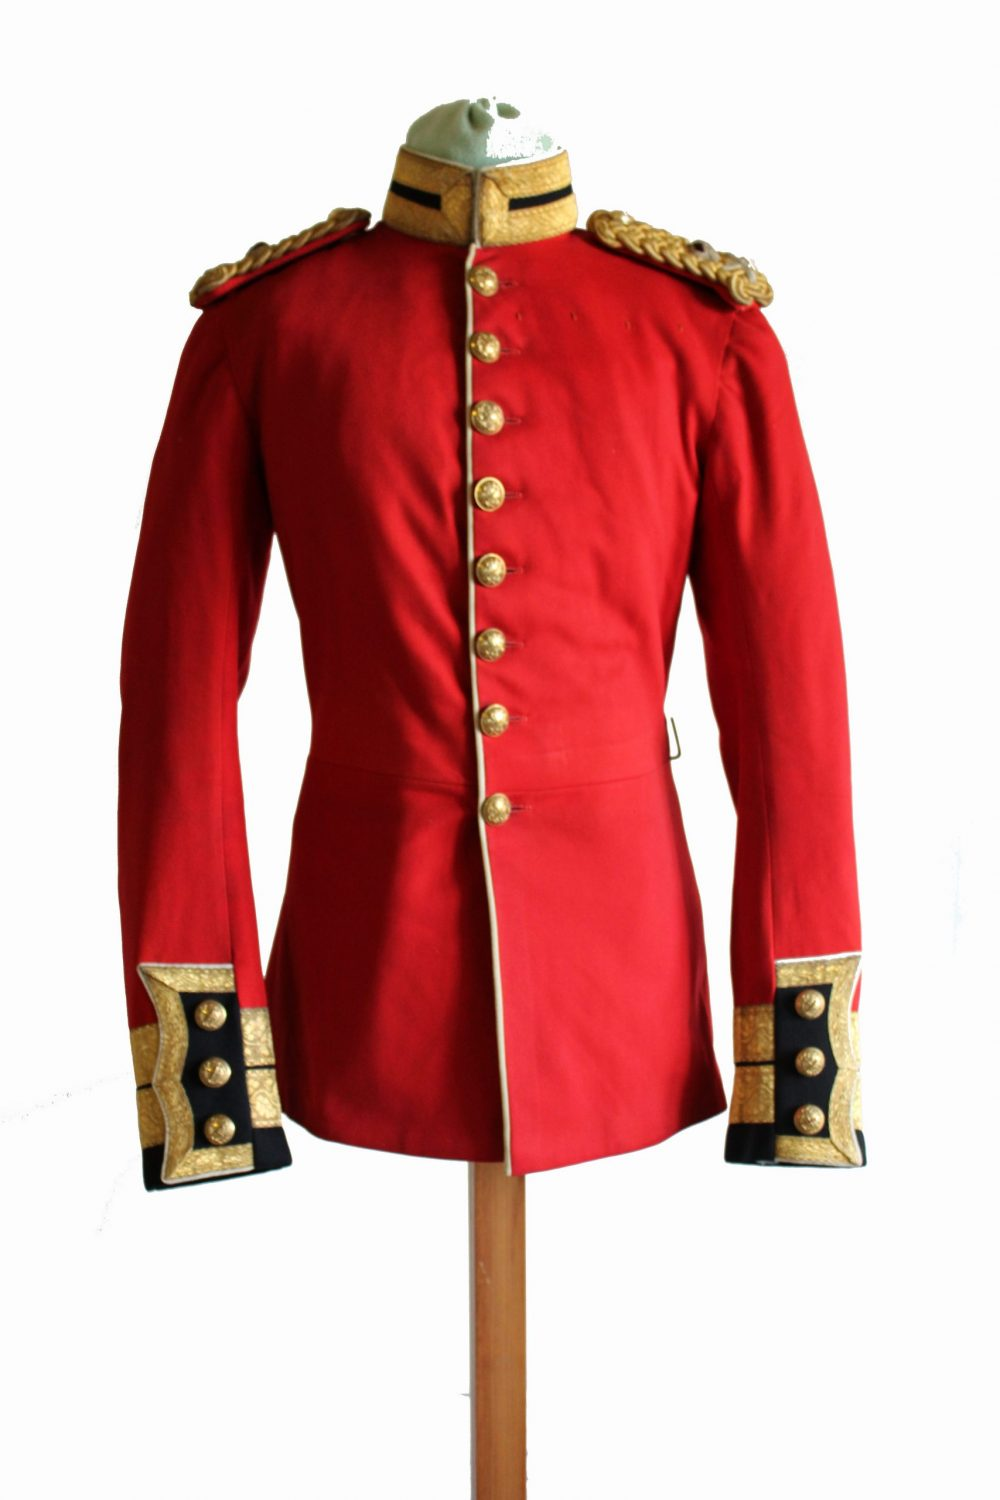 Red military jacket with gold buttons, collar, sleeve cuffs and shoulder epaulettes